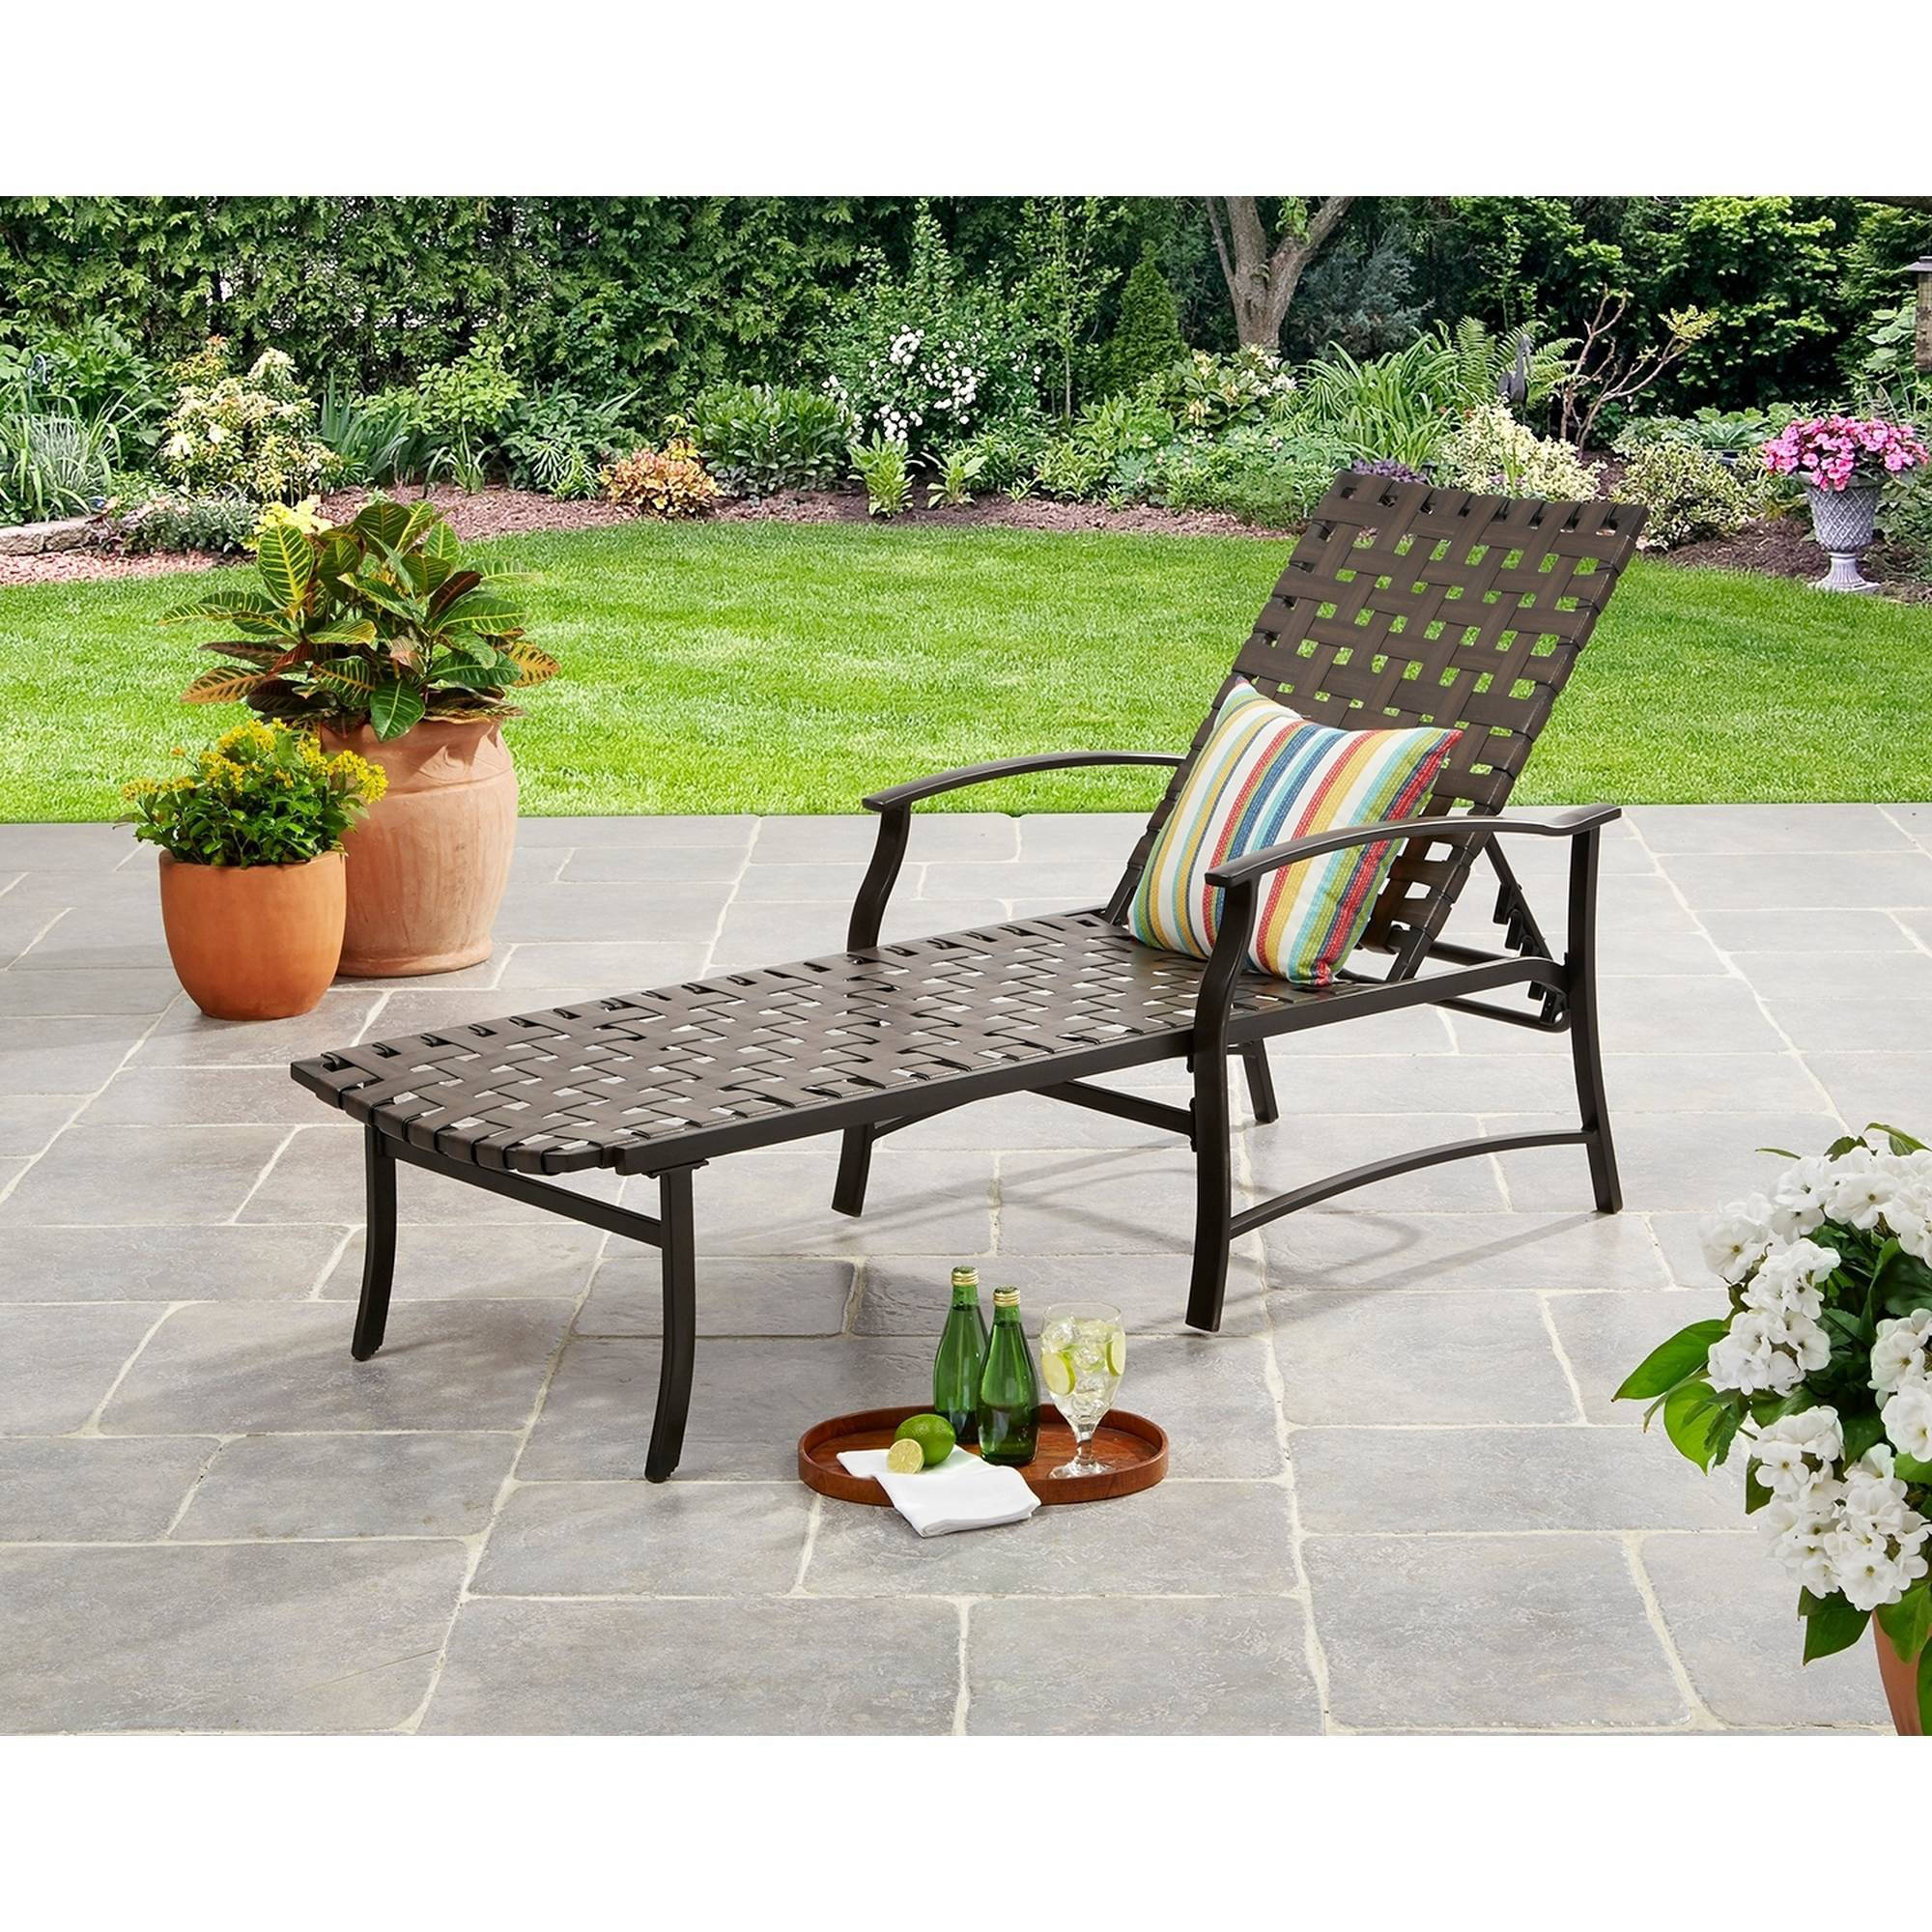 Mainstays Willow Valley Chaise Lounge